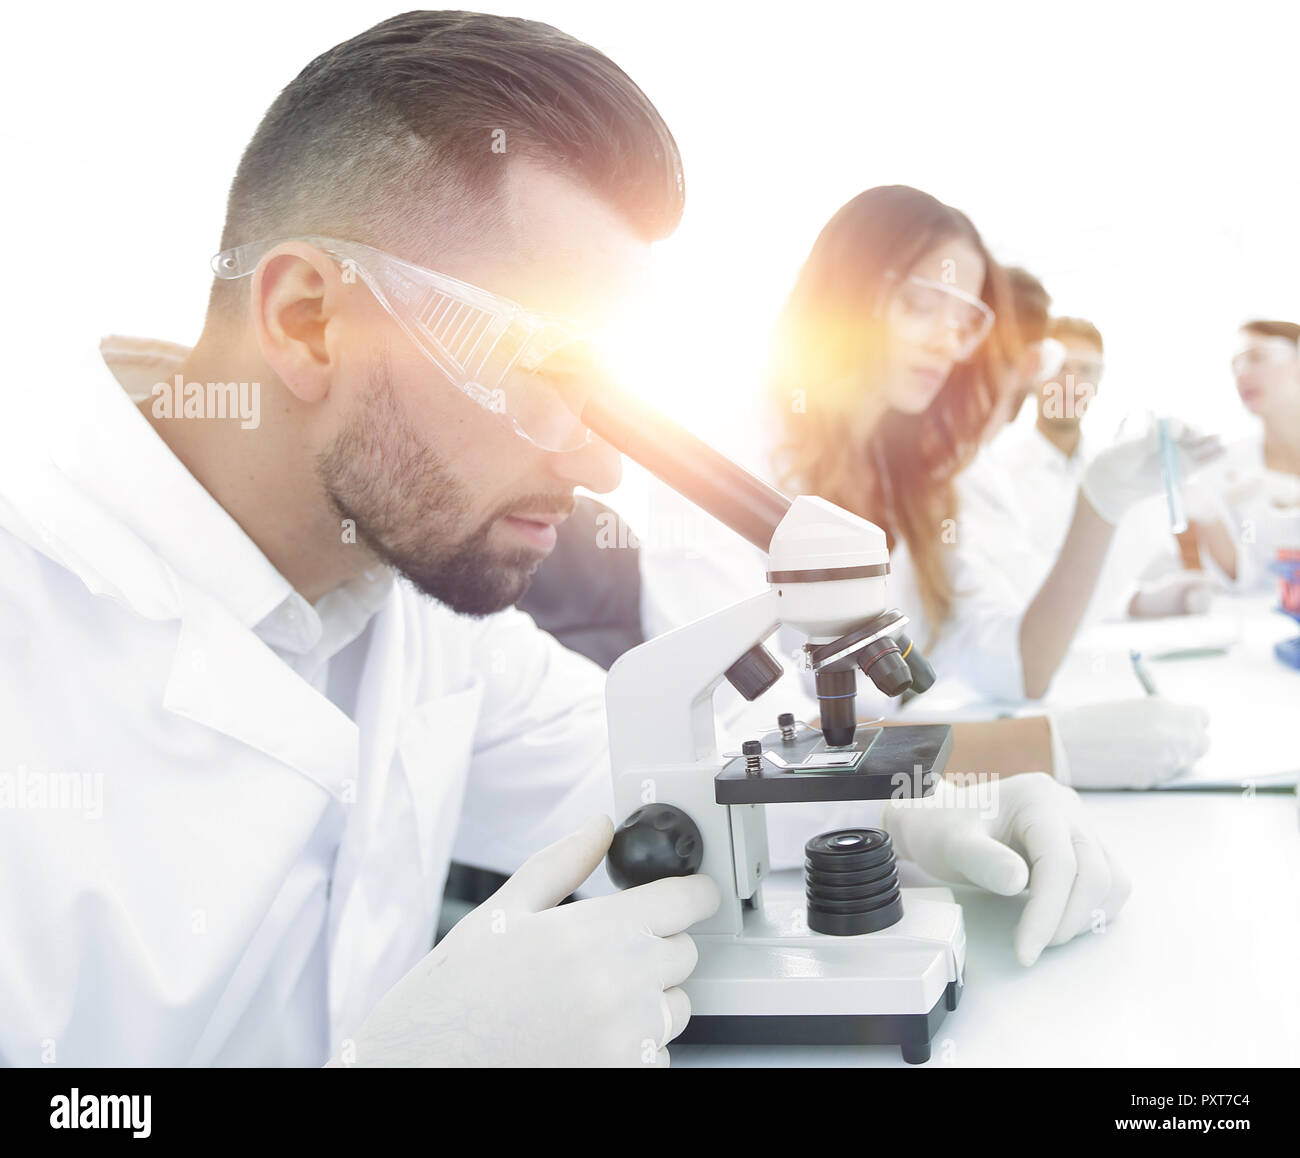 male lab technician looks at the sample under a microscope - Stock Image